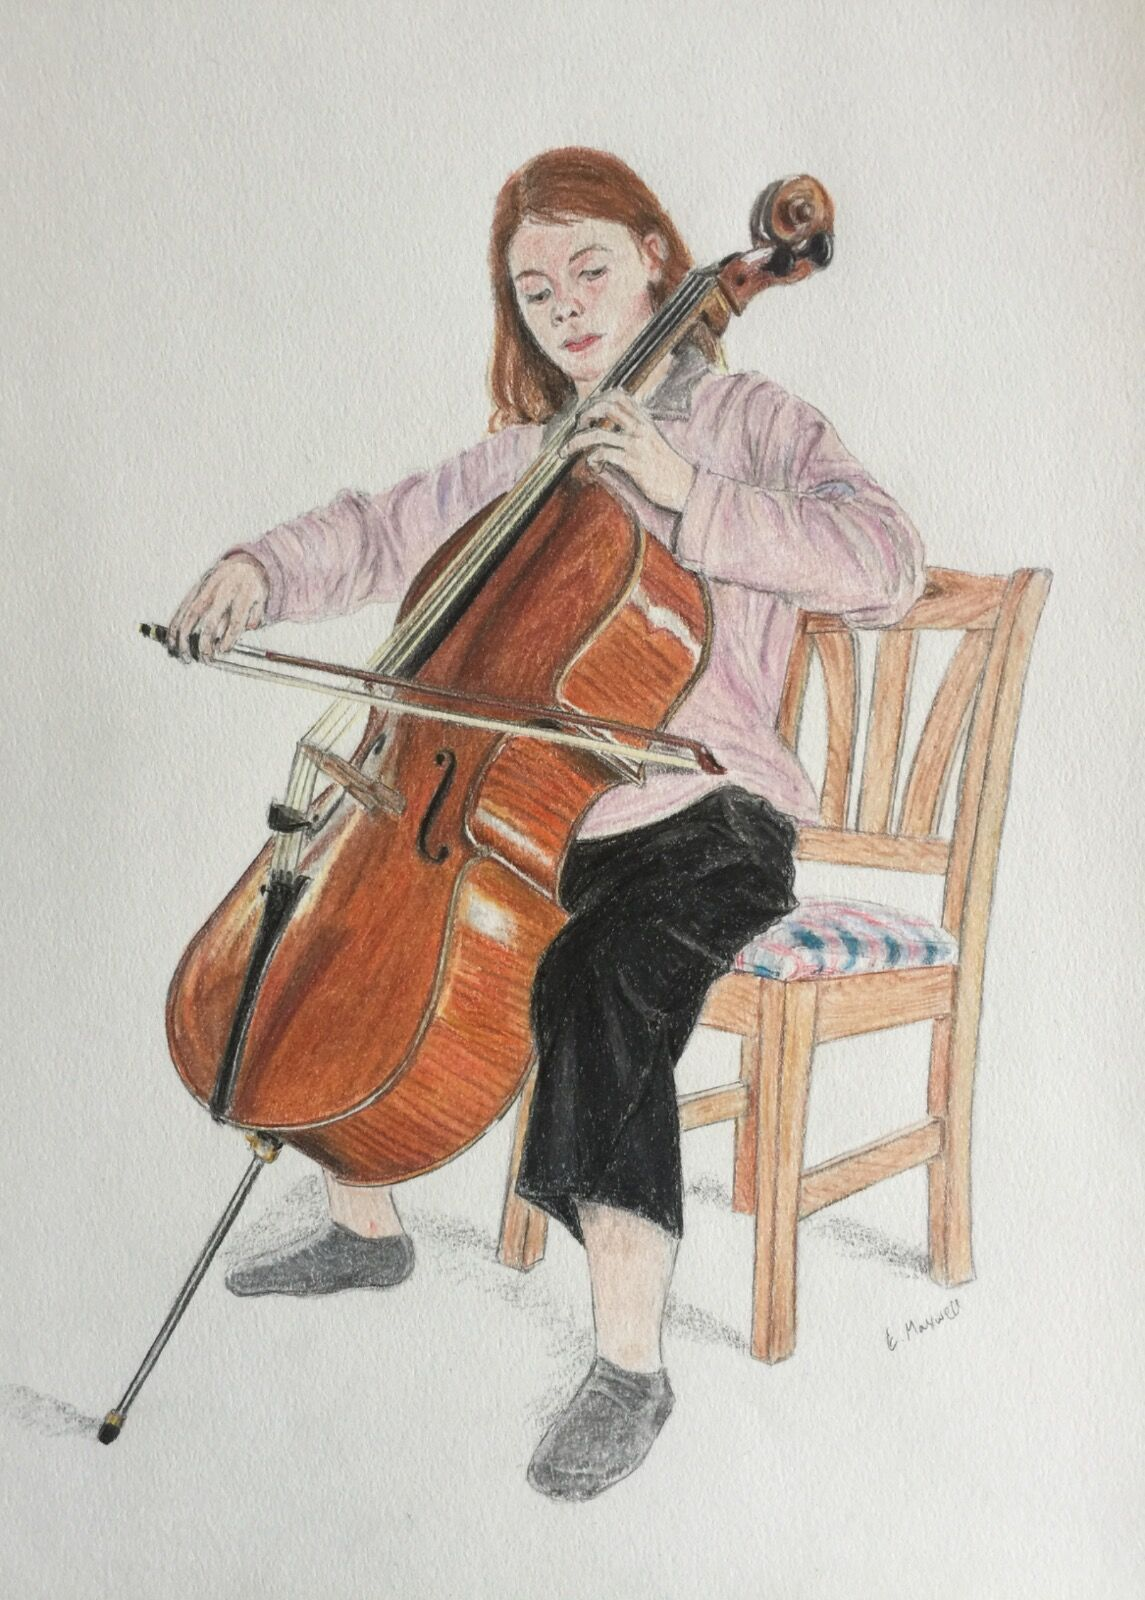 Portrait of a cellist